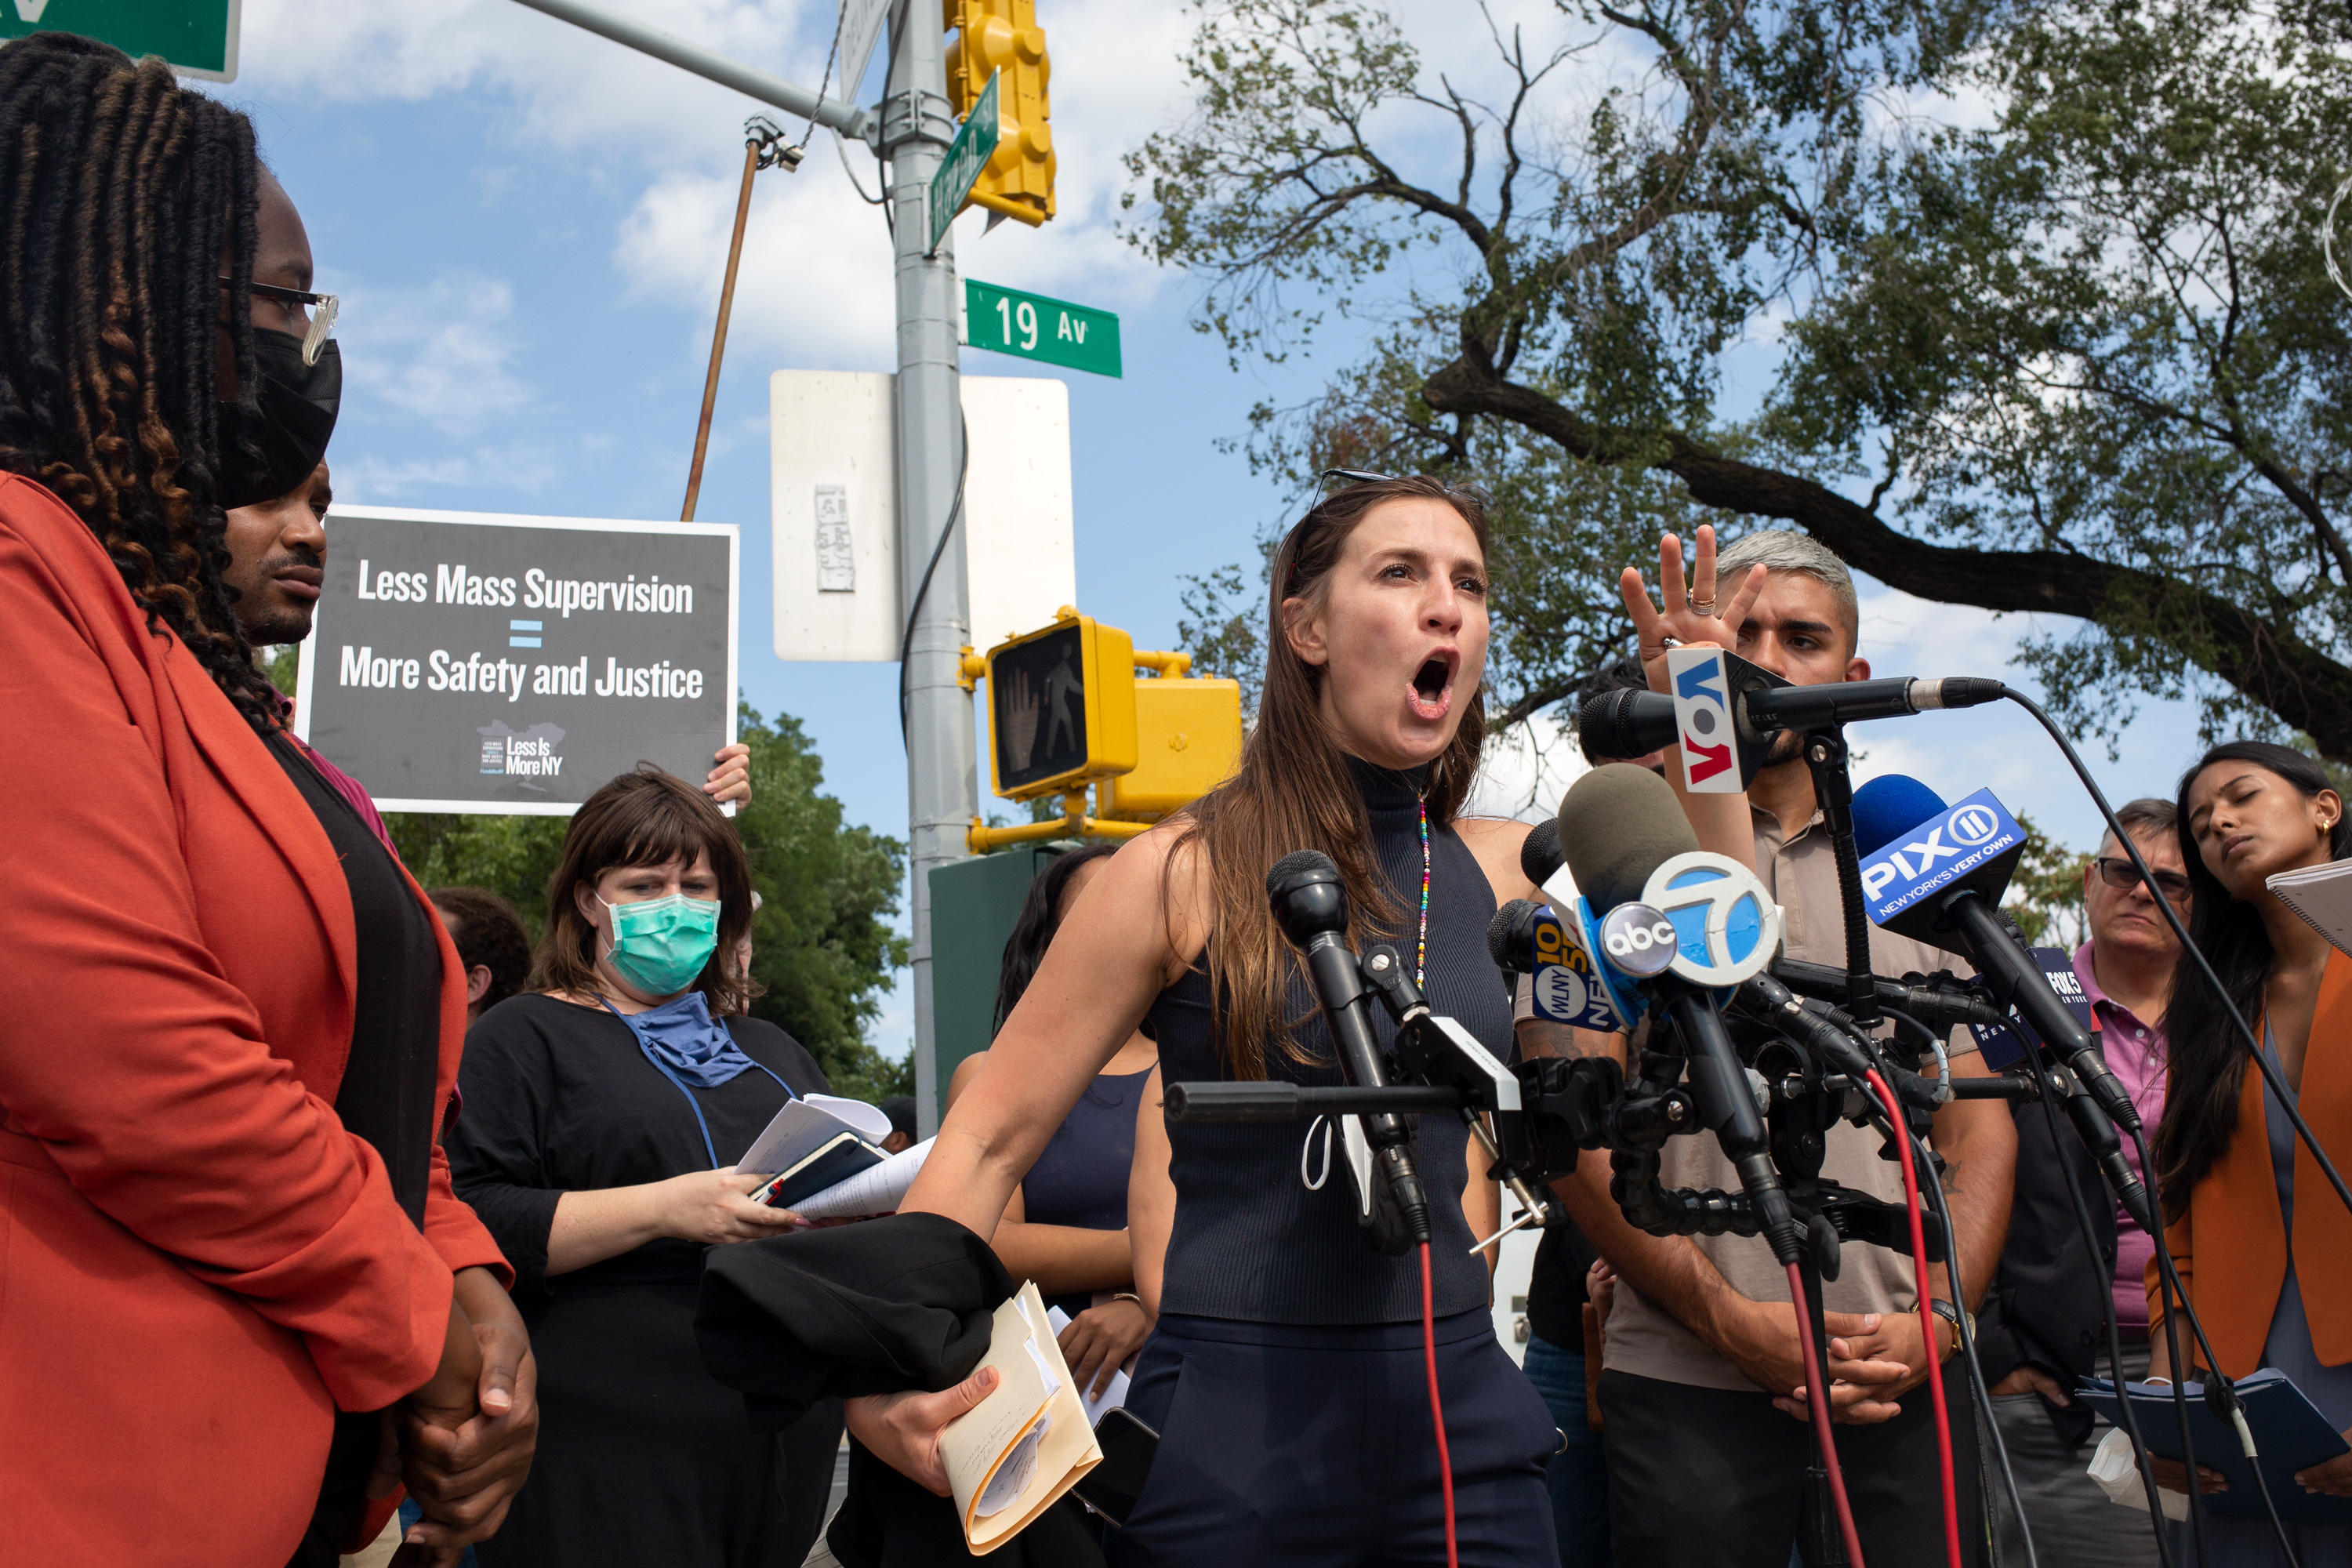 State Sen. Alessandra Biaggi (D-The Bronx, Westchester) speaks about horrid conditions she witnessed on Rikers Island during a rally outside the jail complex on Monday, Sept. 13, 2021.